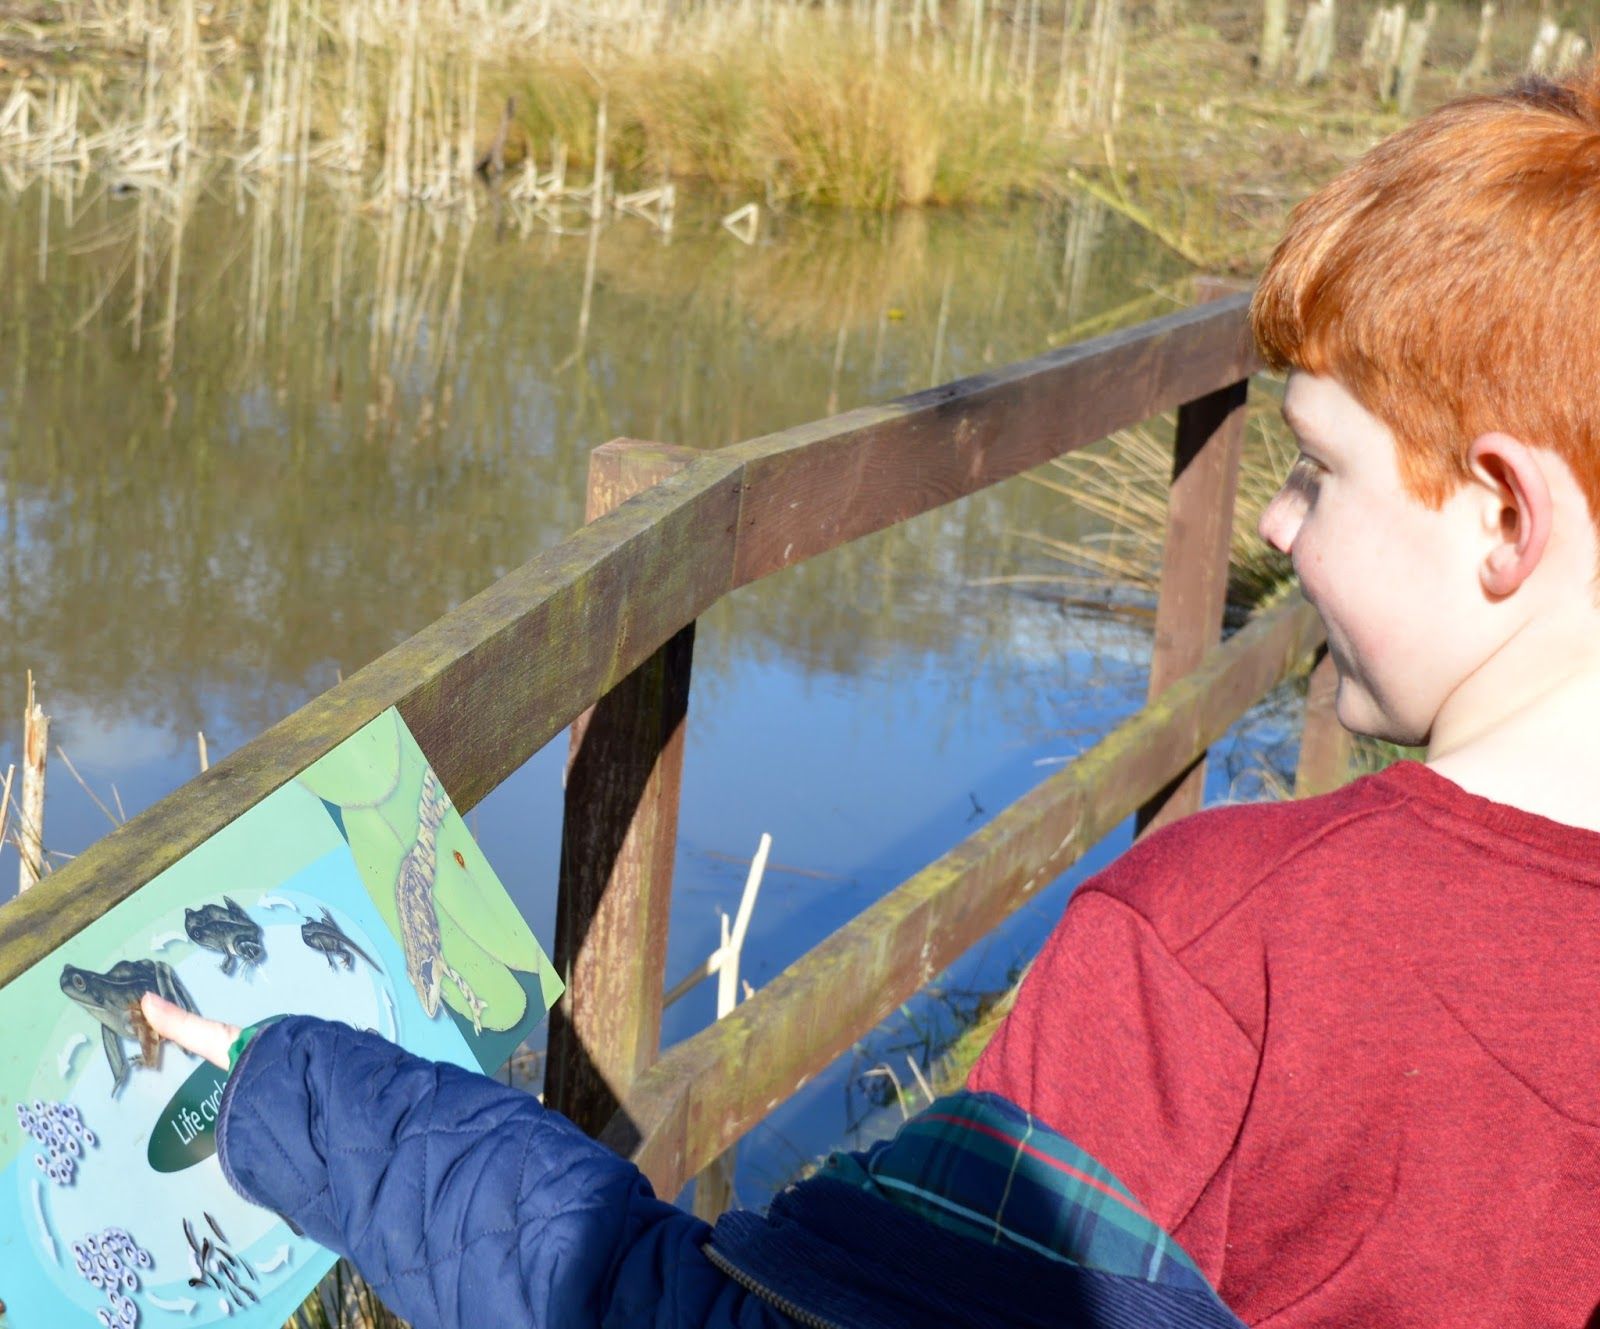 WWT Washington Wetland Centre | An Accessible North East Day Out for the Whole Family - life cycles sign